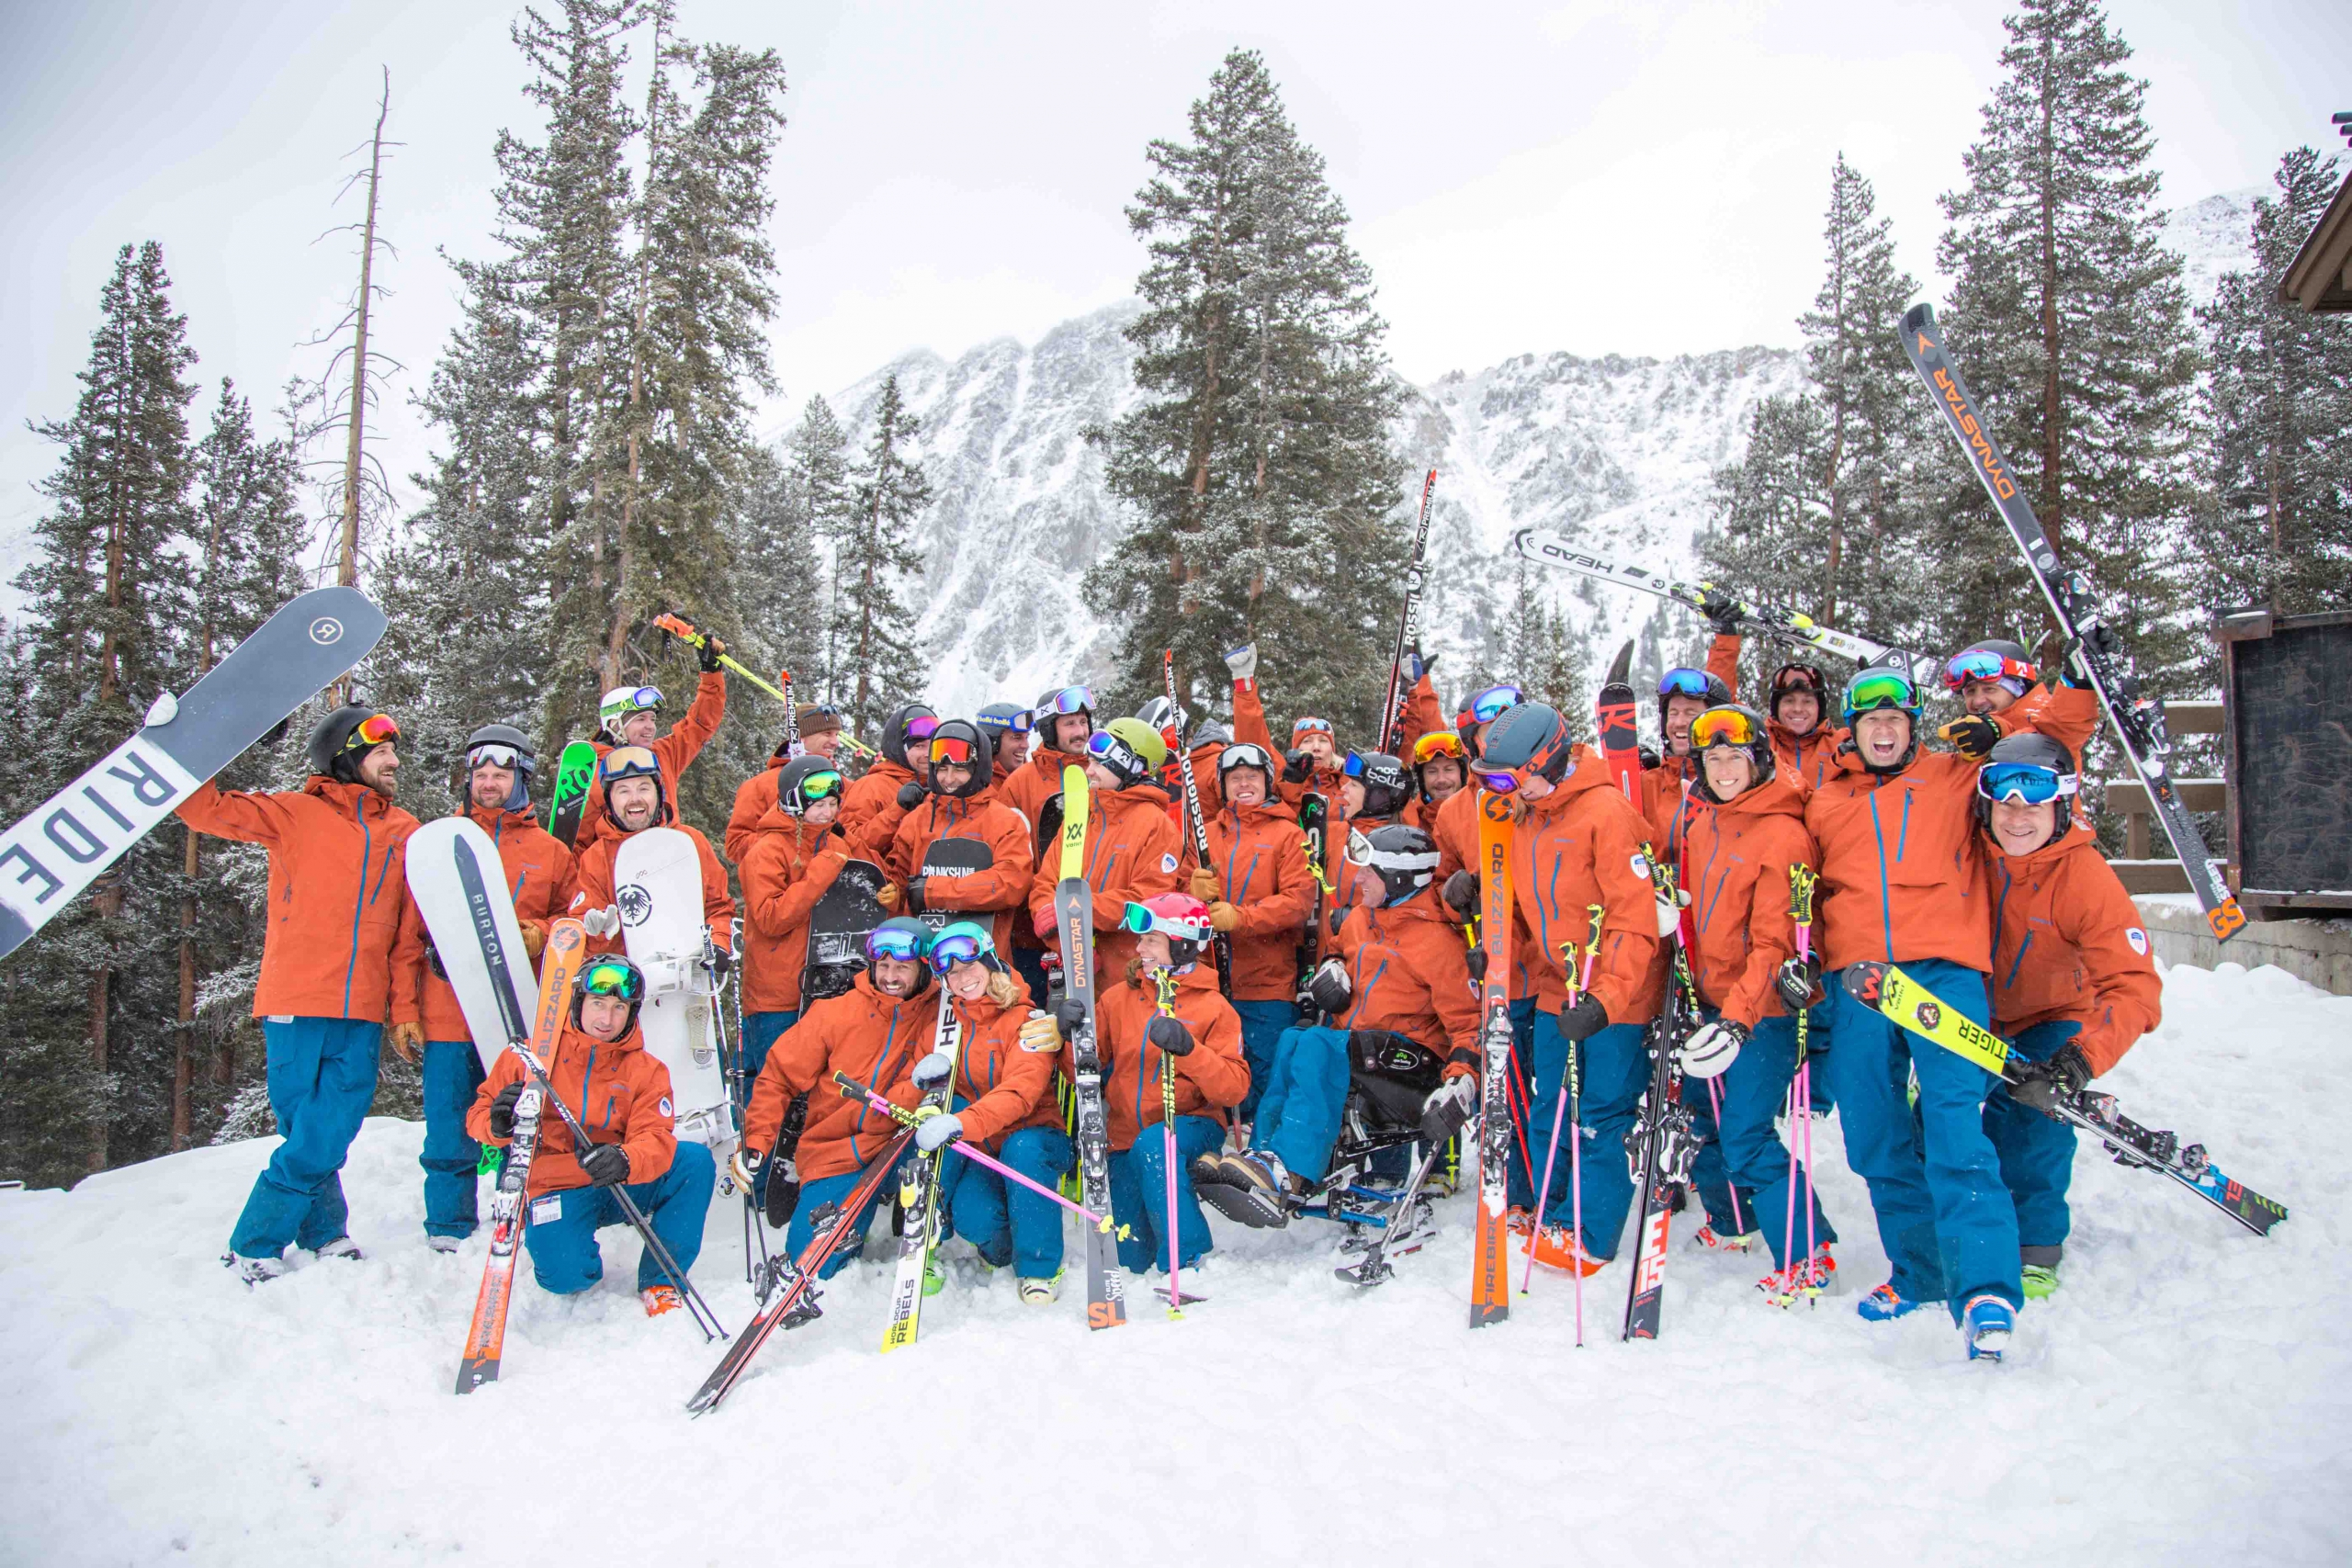 PSIA-AASI National Team celebrates outside in front of snow covered trees holding their skis and snowboards in the air